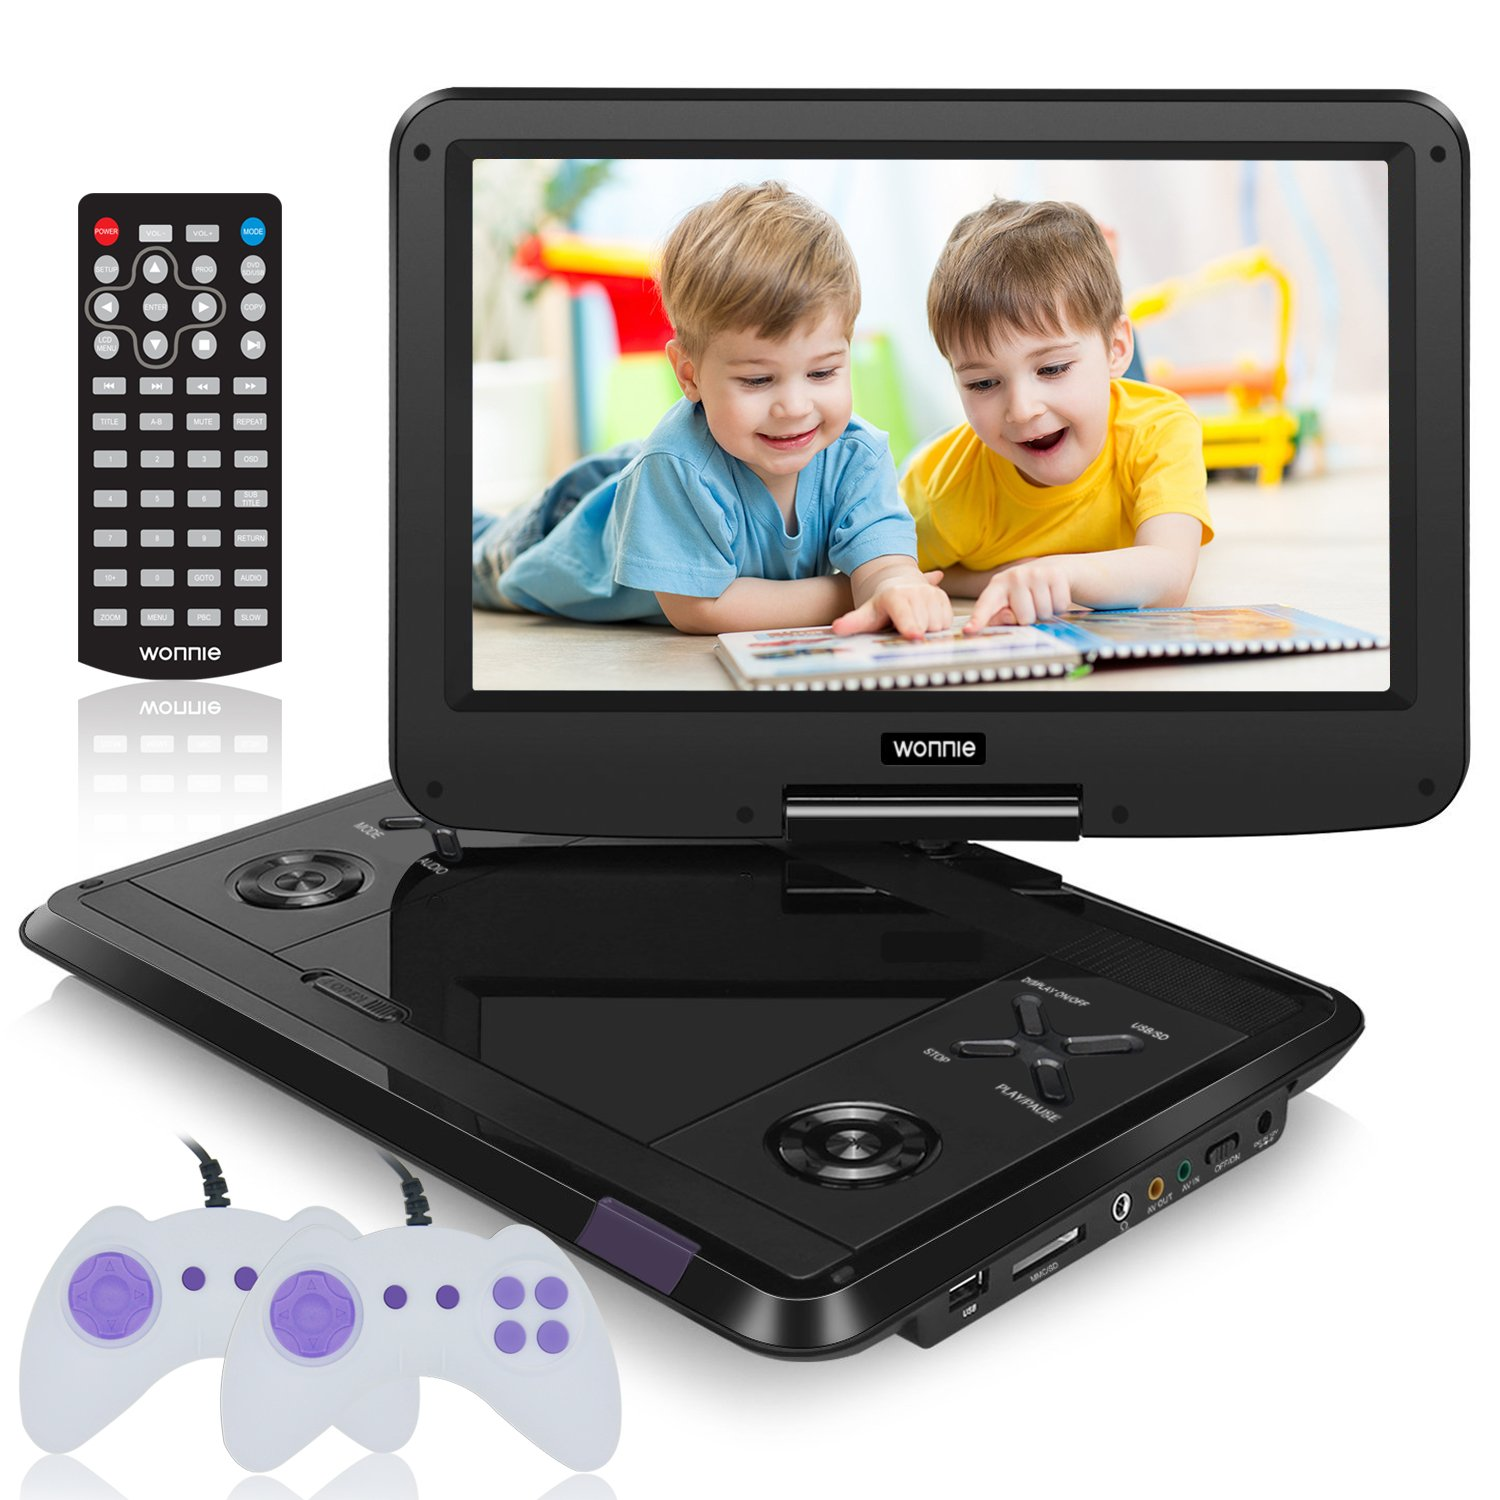 WONNIE 13.6 Inch Portable DVD Player for Kids Built-in 60 Kinds of Games, USB / SD Slot and 4 Hours Rechargeable Battery (Black) by WONNIE